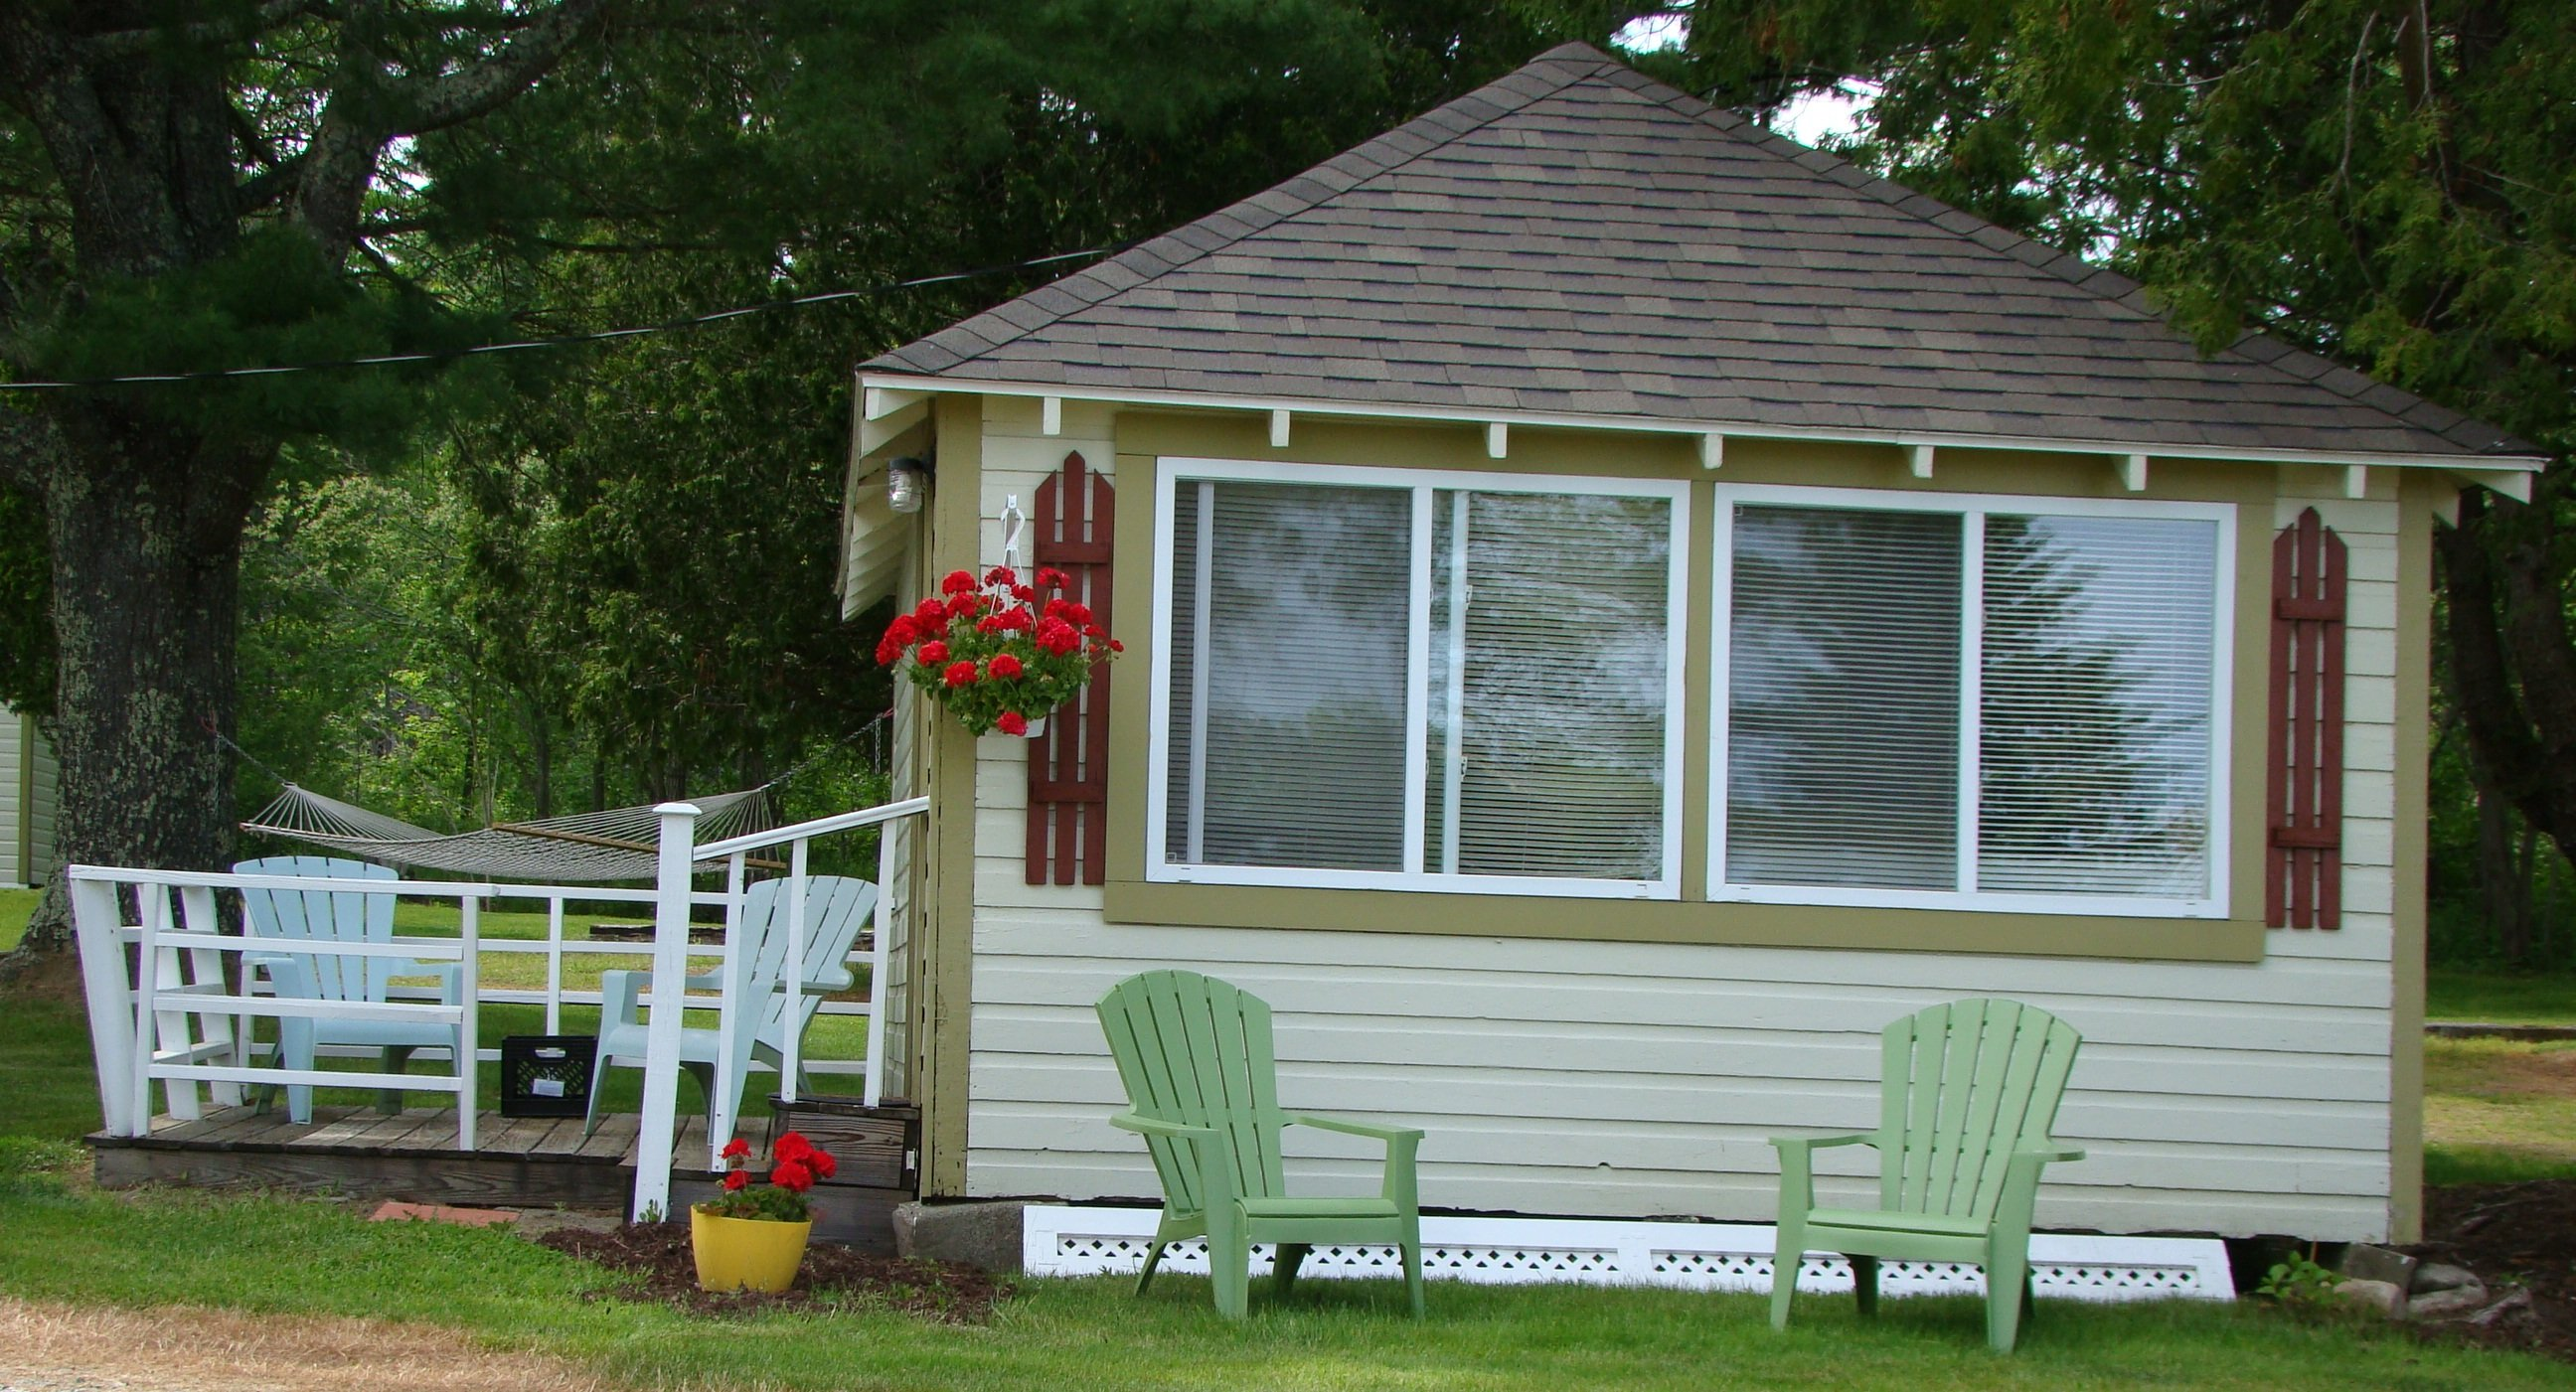 Deluxe one bedroom cottage (with kitchenette) - queen bed